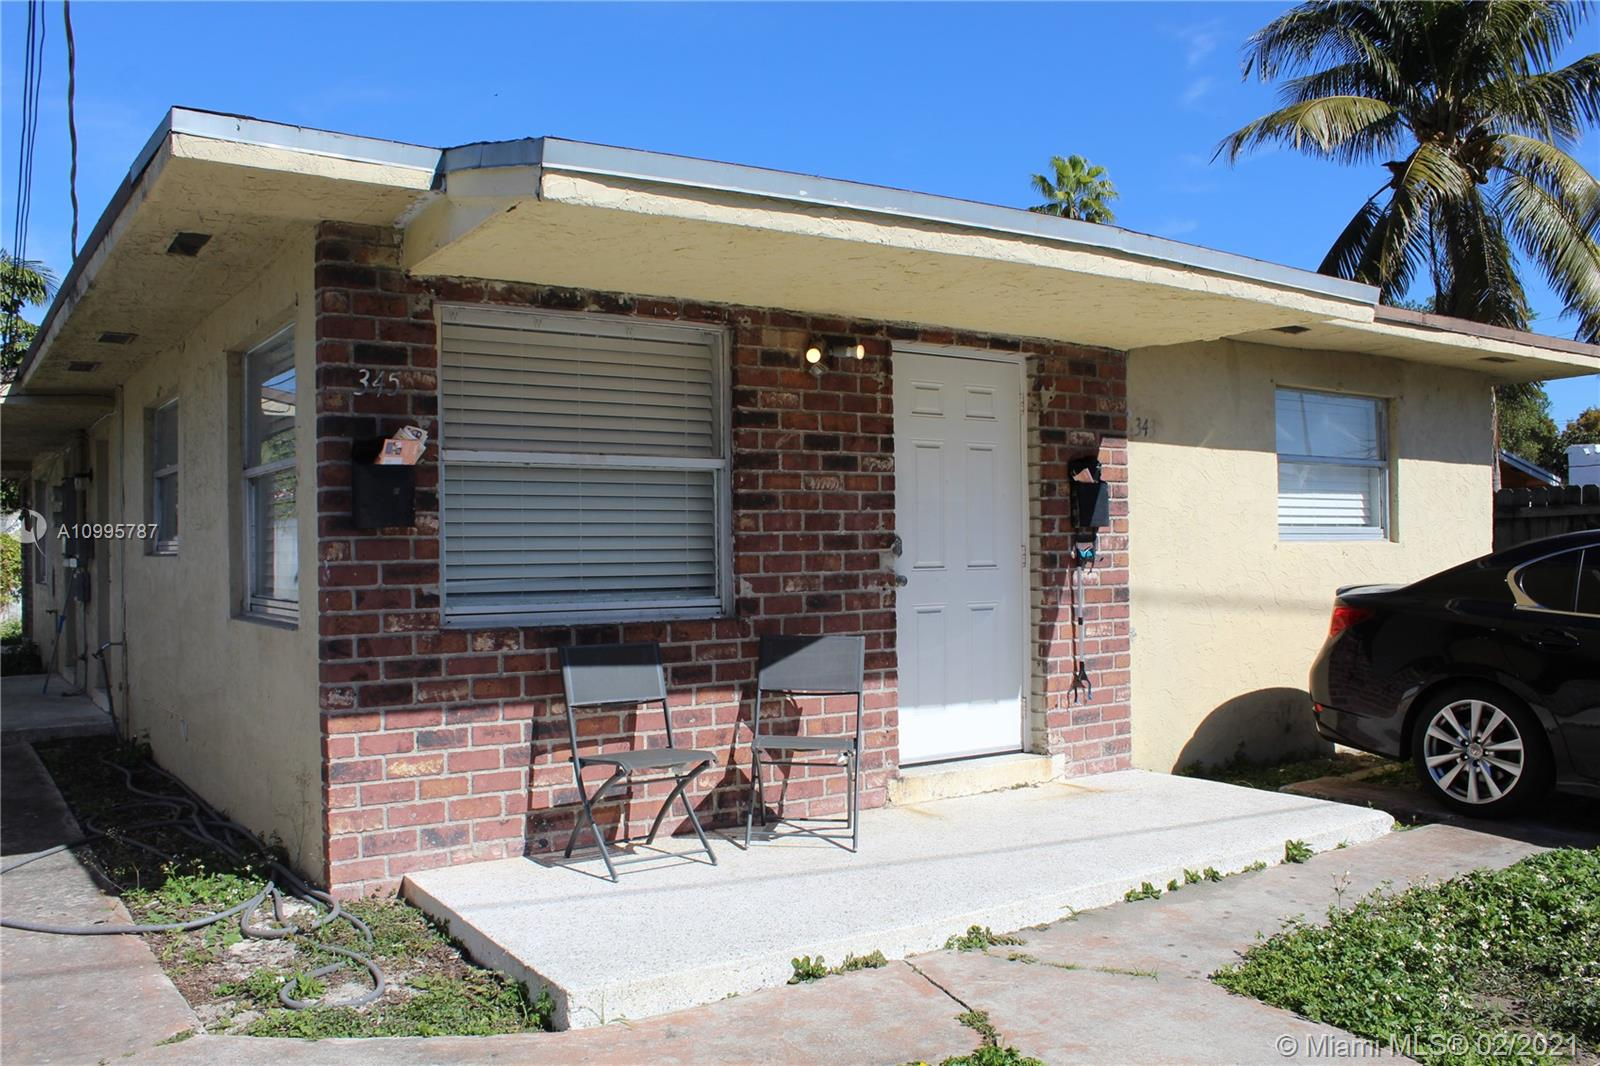 Details for 343 39th St, Miami, FL 33127